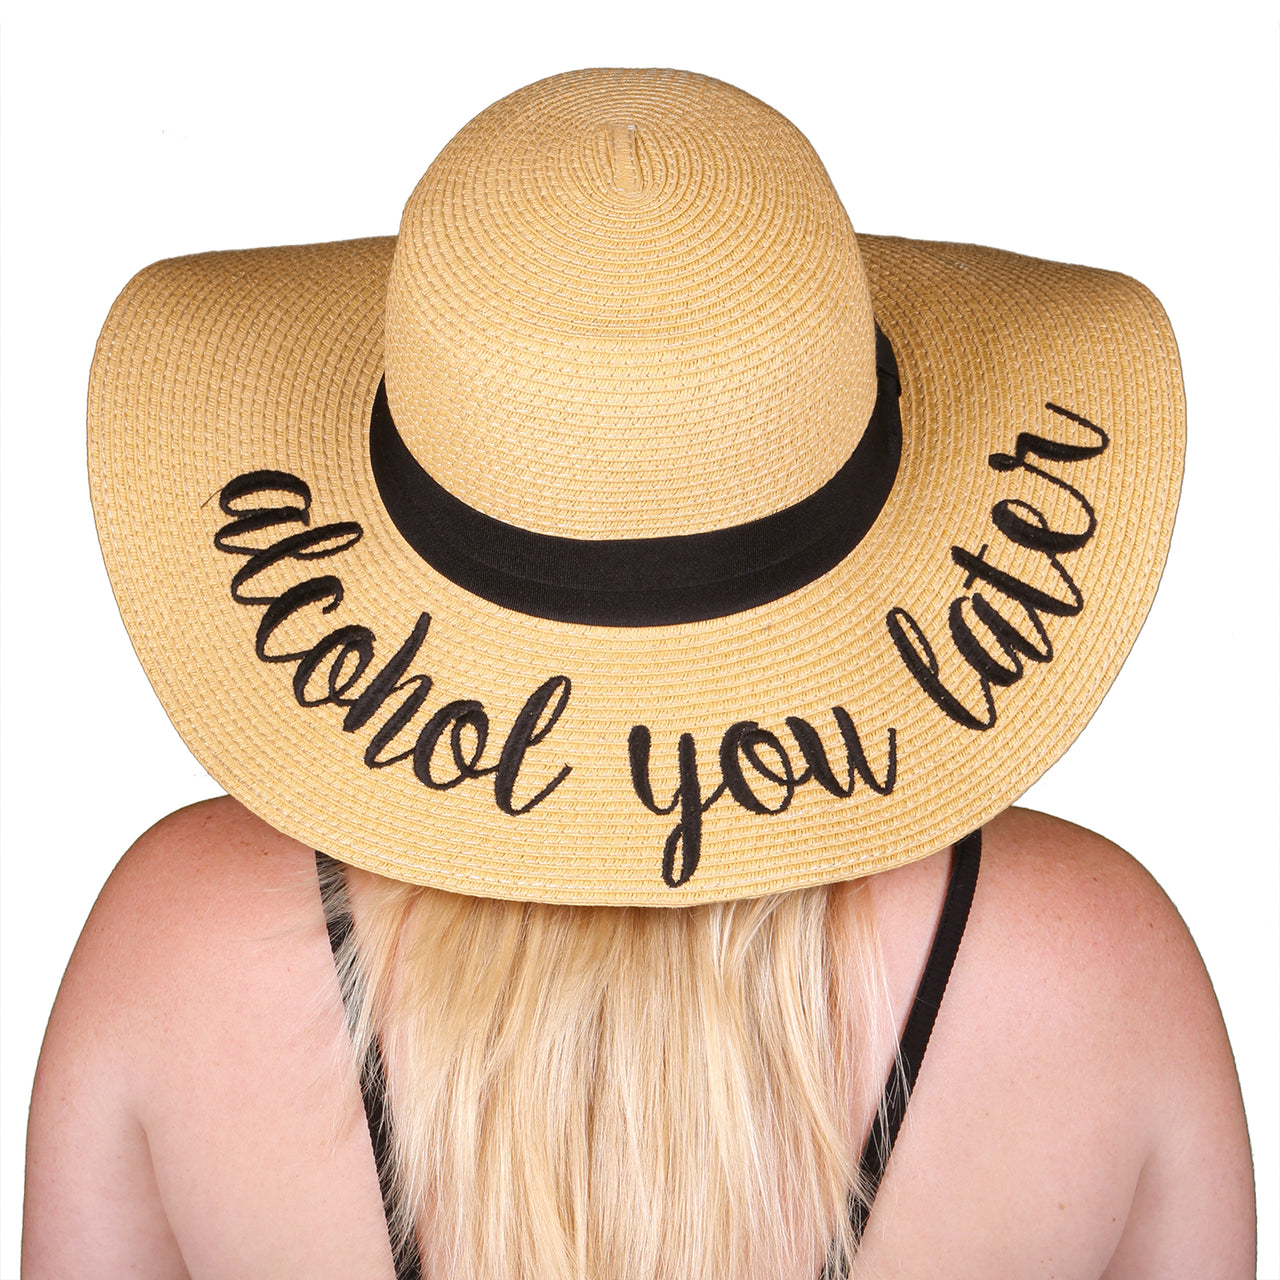 C.C Embroidered Sun Hat - Alcohol You Later